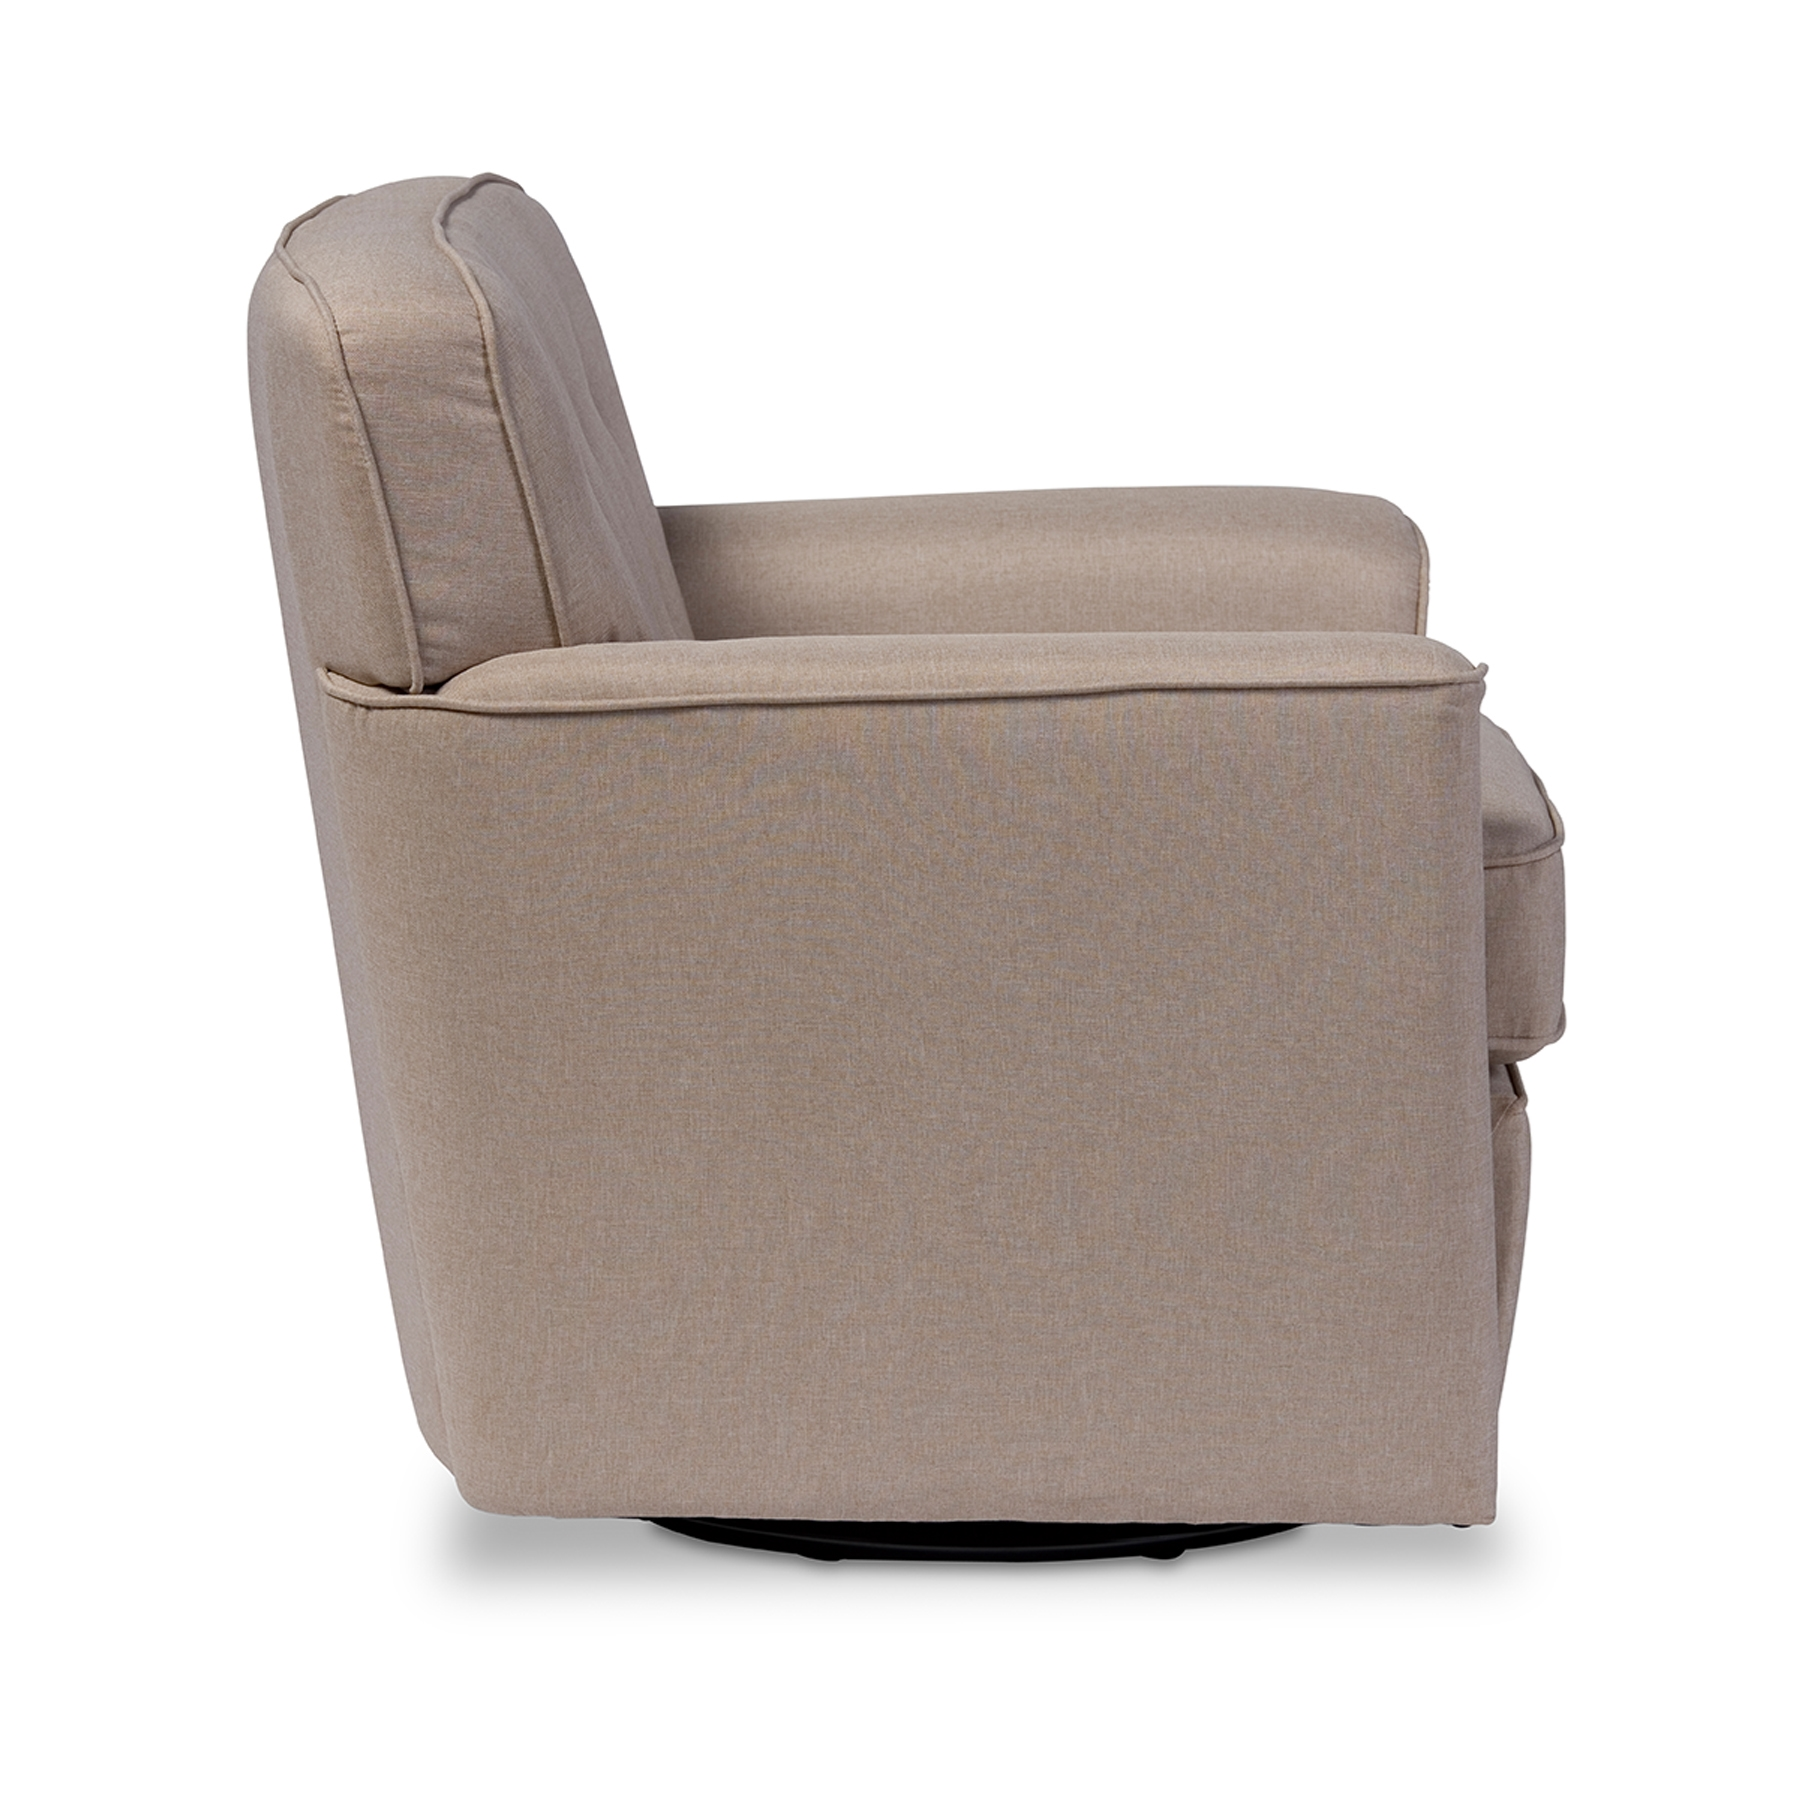 ... Baxton Studio Canberra Modern Retro Contemporary Beige Fabric Upholstered Button-tufted Swivel Lounge Chair with ...  sc 1 st  Baxton Studio Outlet & Baxton Studio Canberra Modern Retro Contemporary Beige Fabric ... islam-shia.org